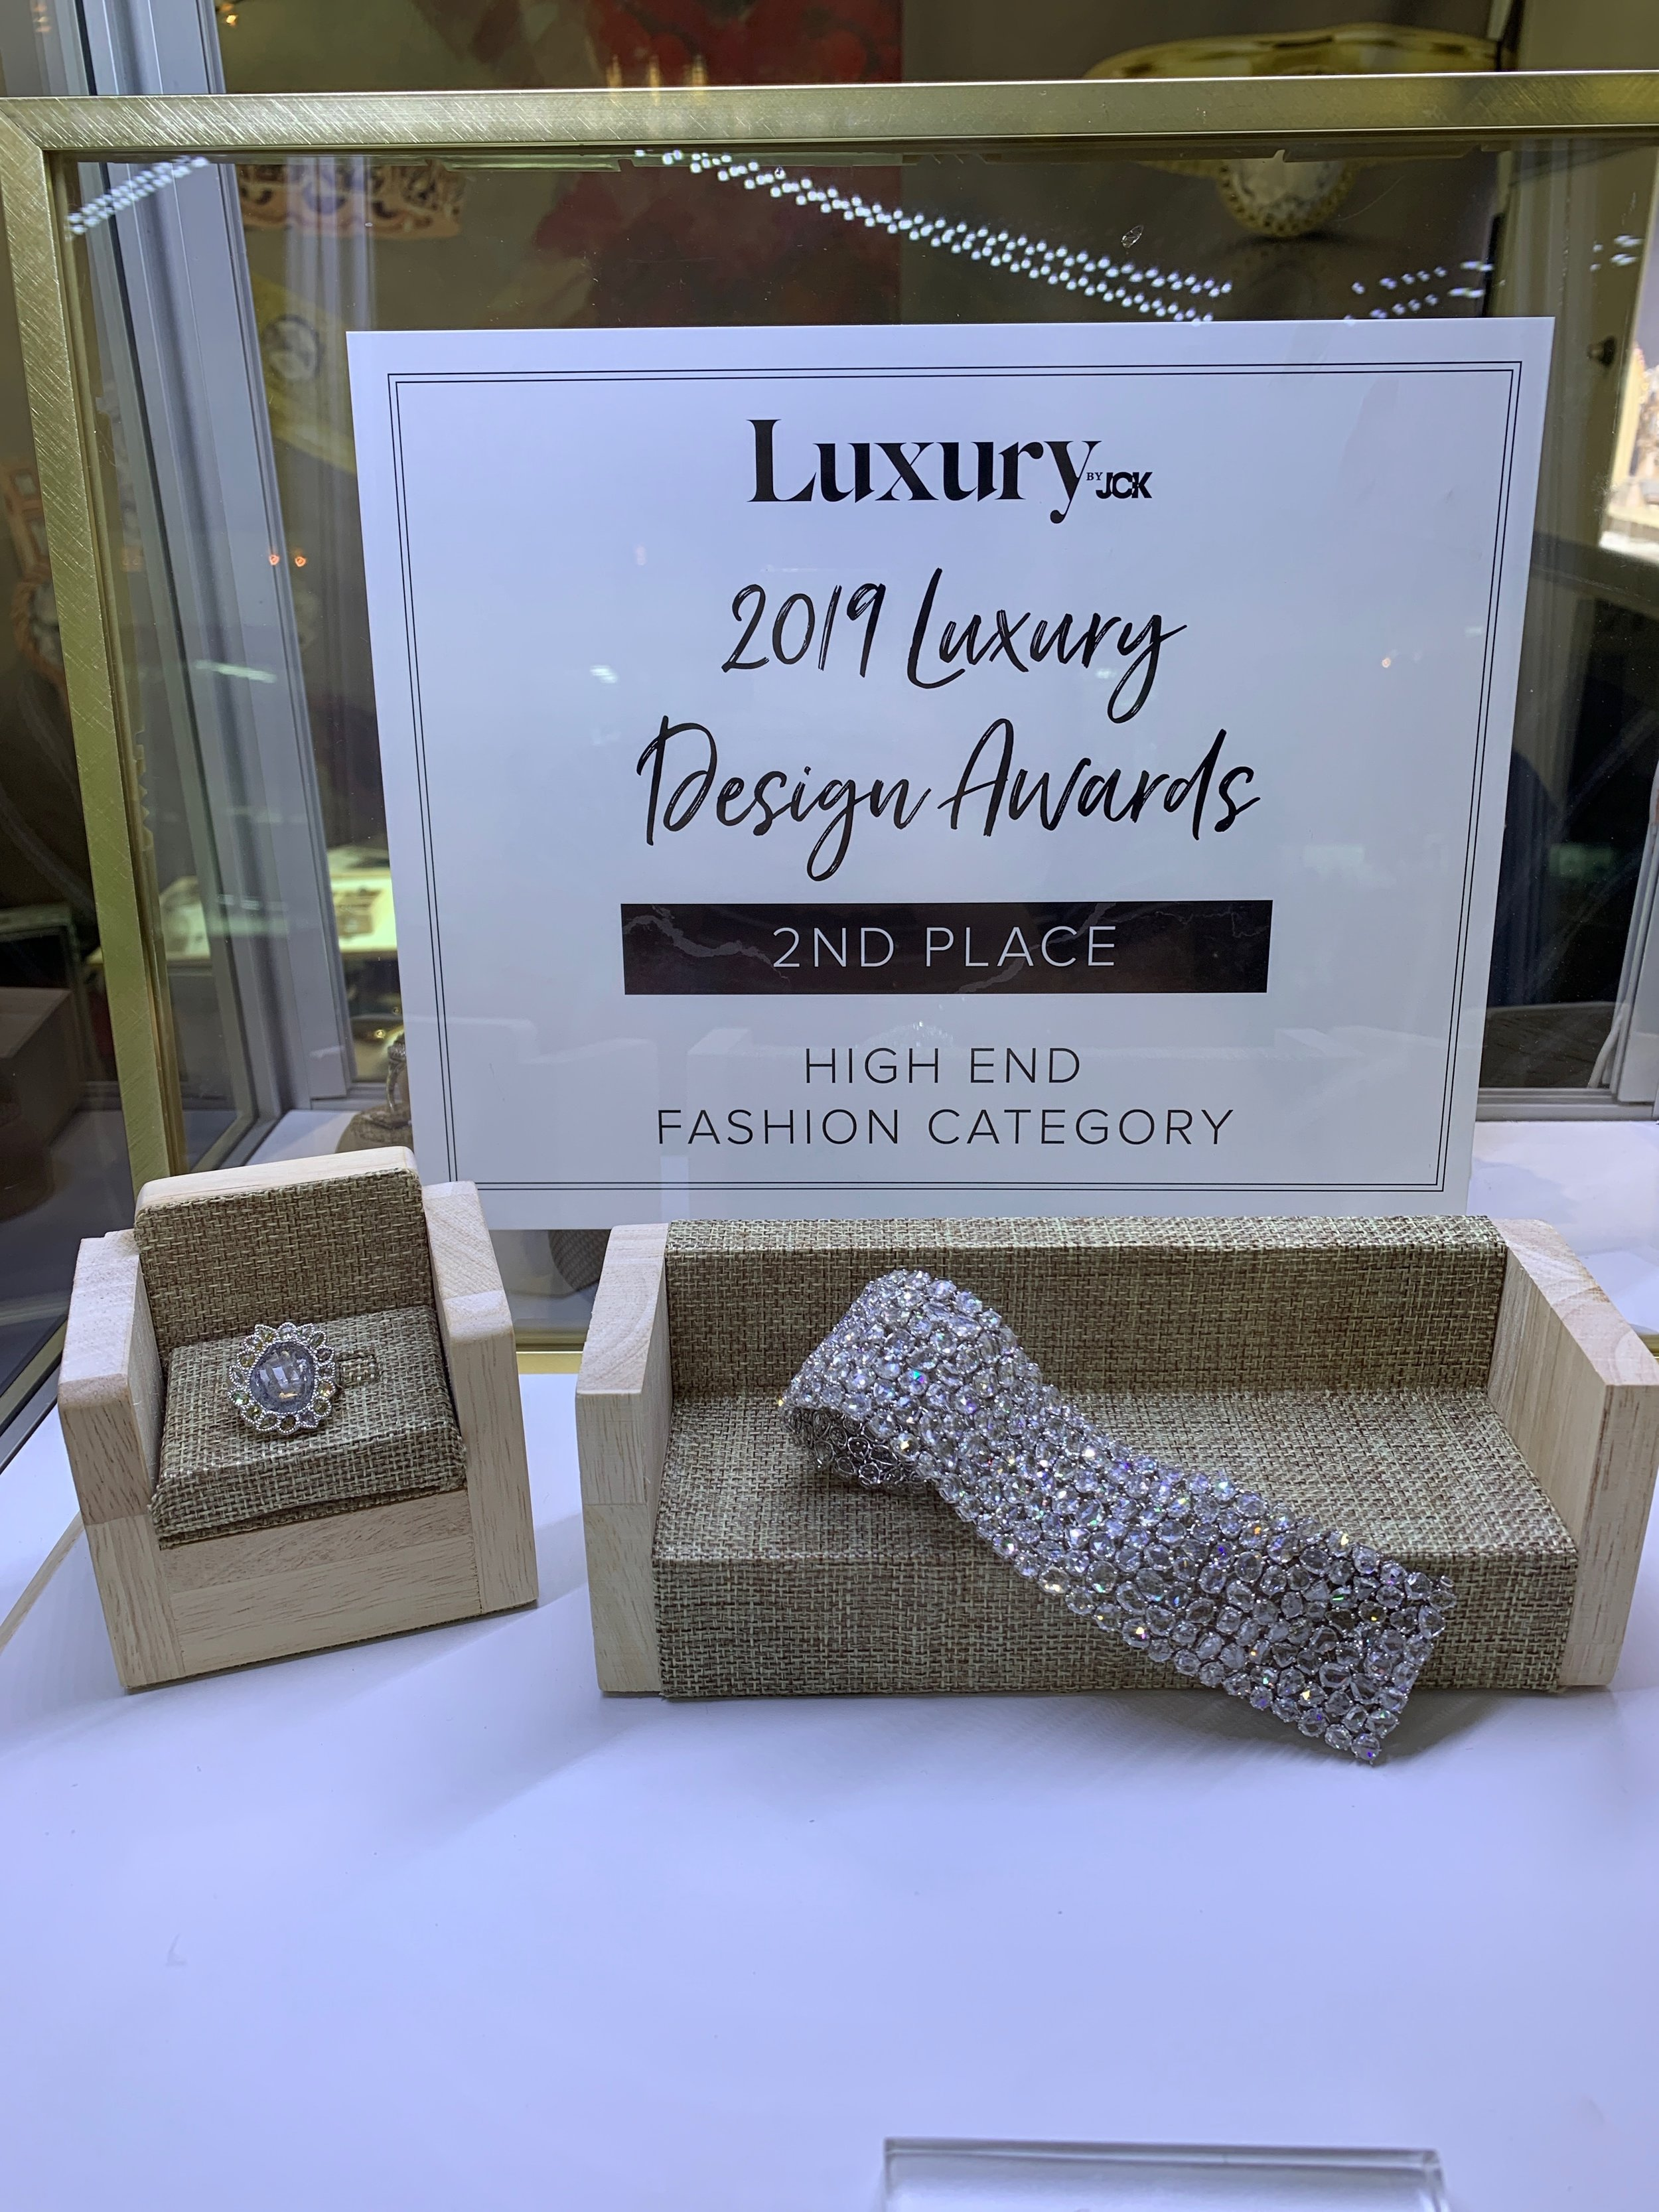 VIVAAN AS THE LUXURY DESIGN AWARD WINNER 2019 AT THE JCK LAS VEGAS IN THE HI END FASHION CATEGORY….